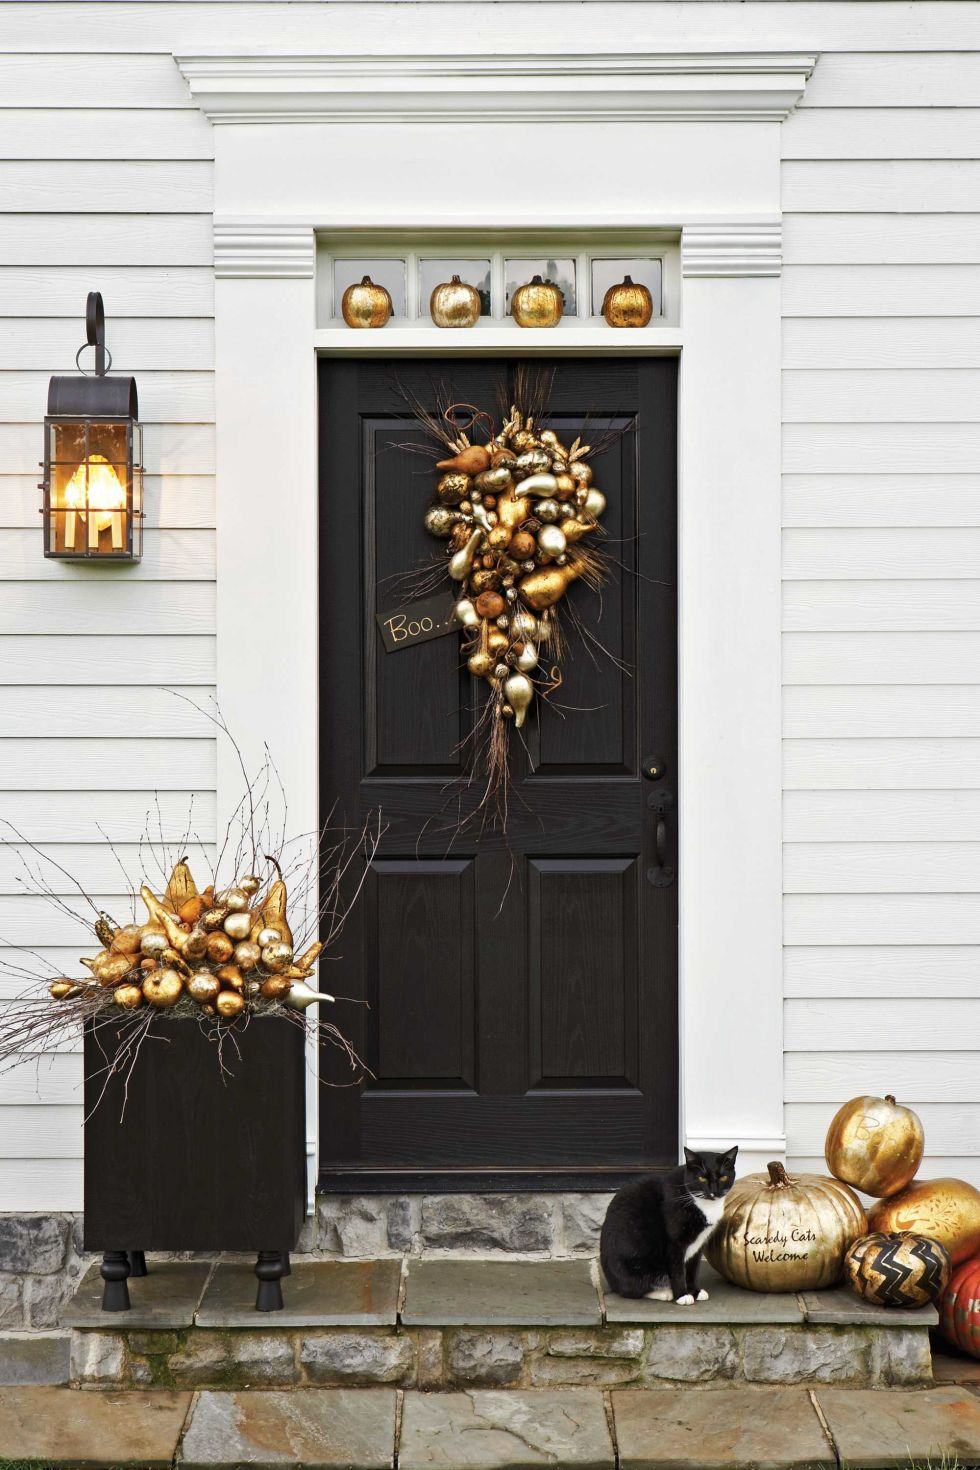 A DIY front porch for Halloween from Country Living.